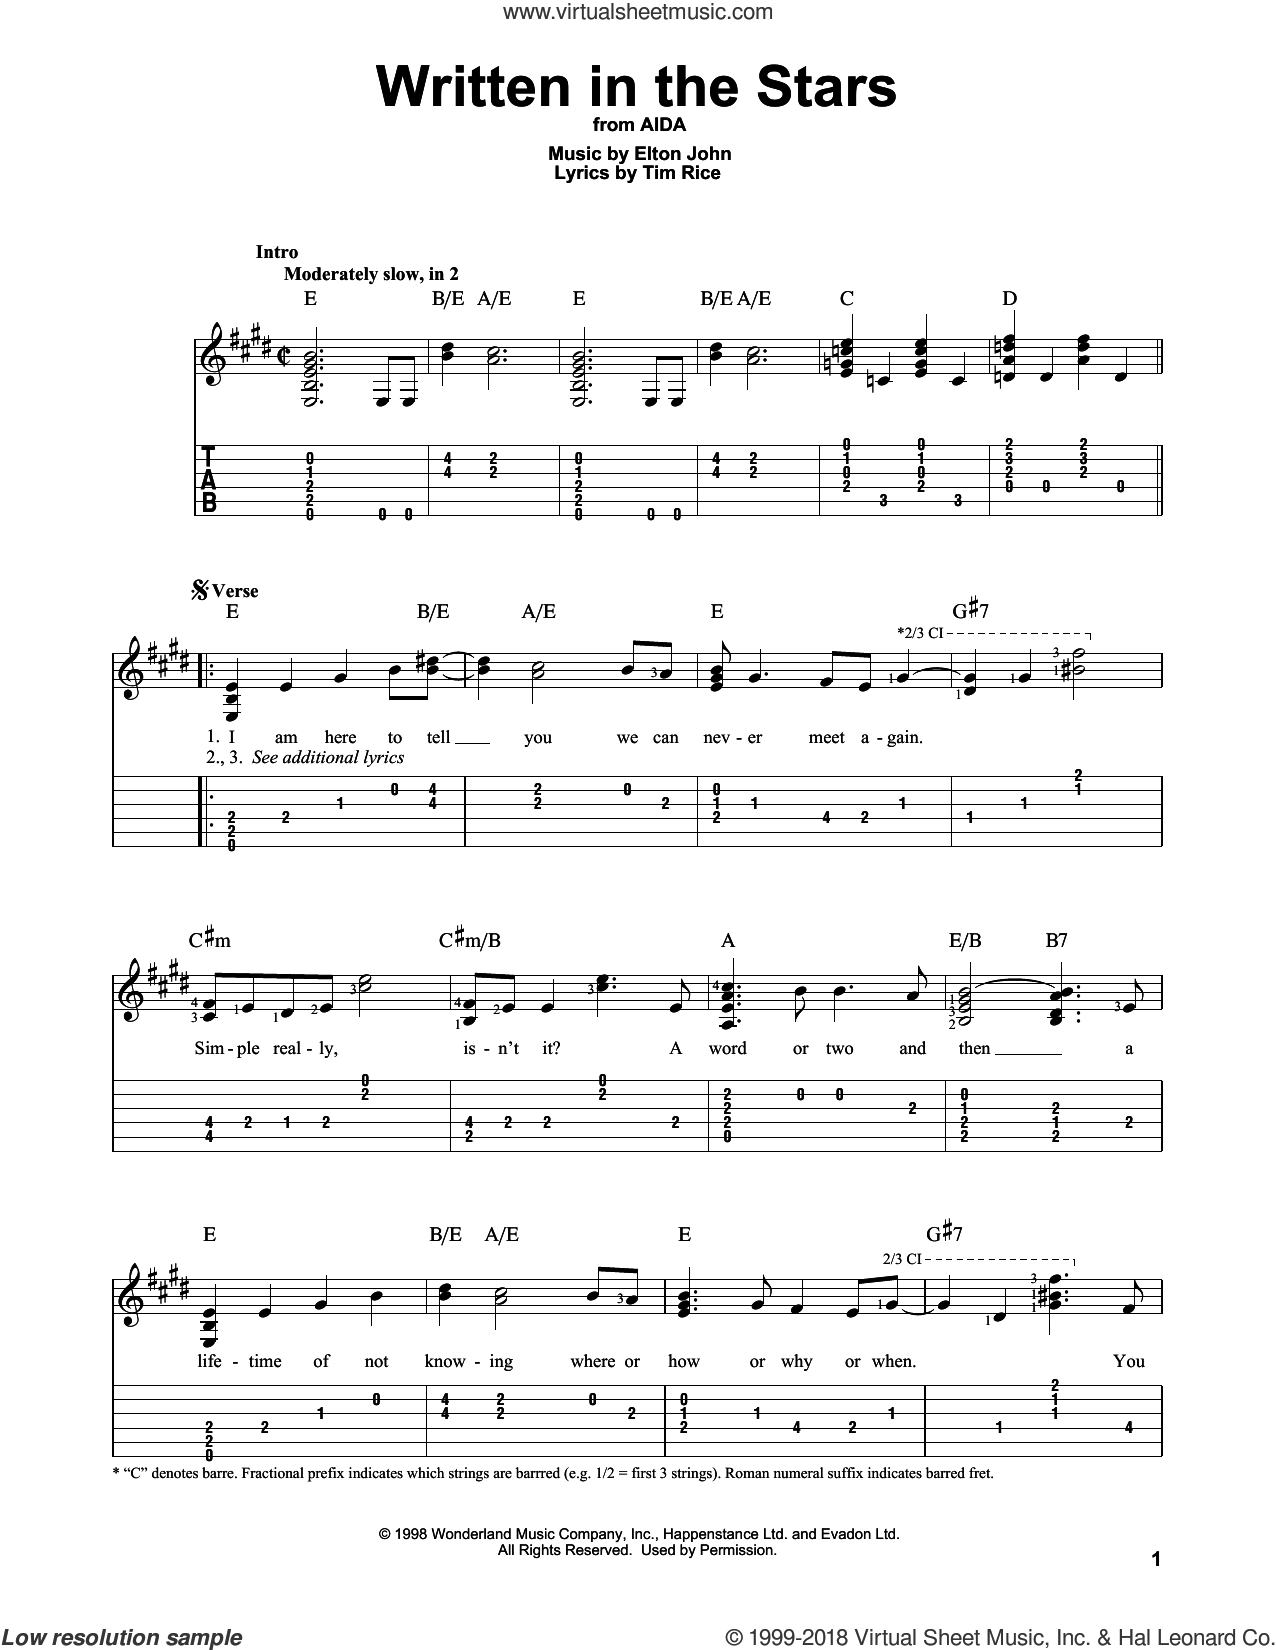 Written In The Stars sheet music for guitar solo by Elton John and Tim Rice, intermediate skill level